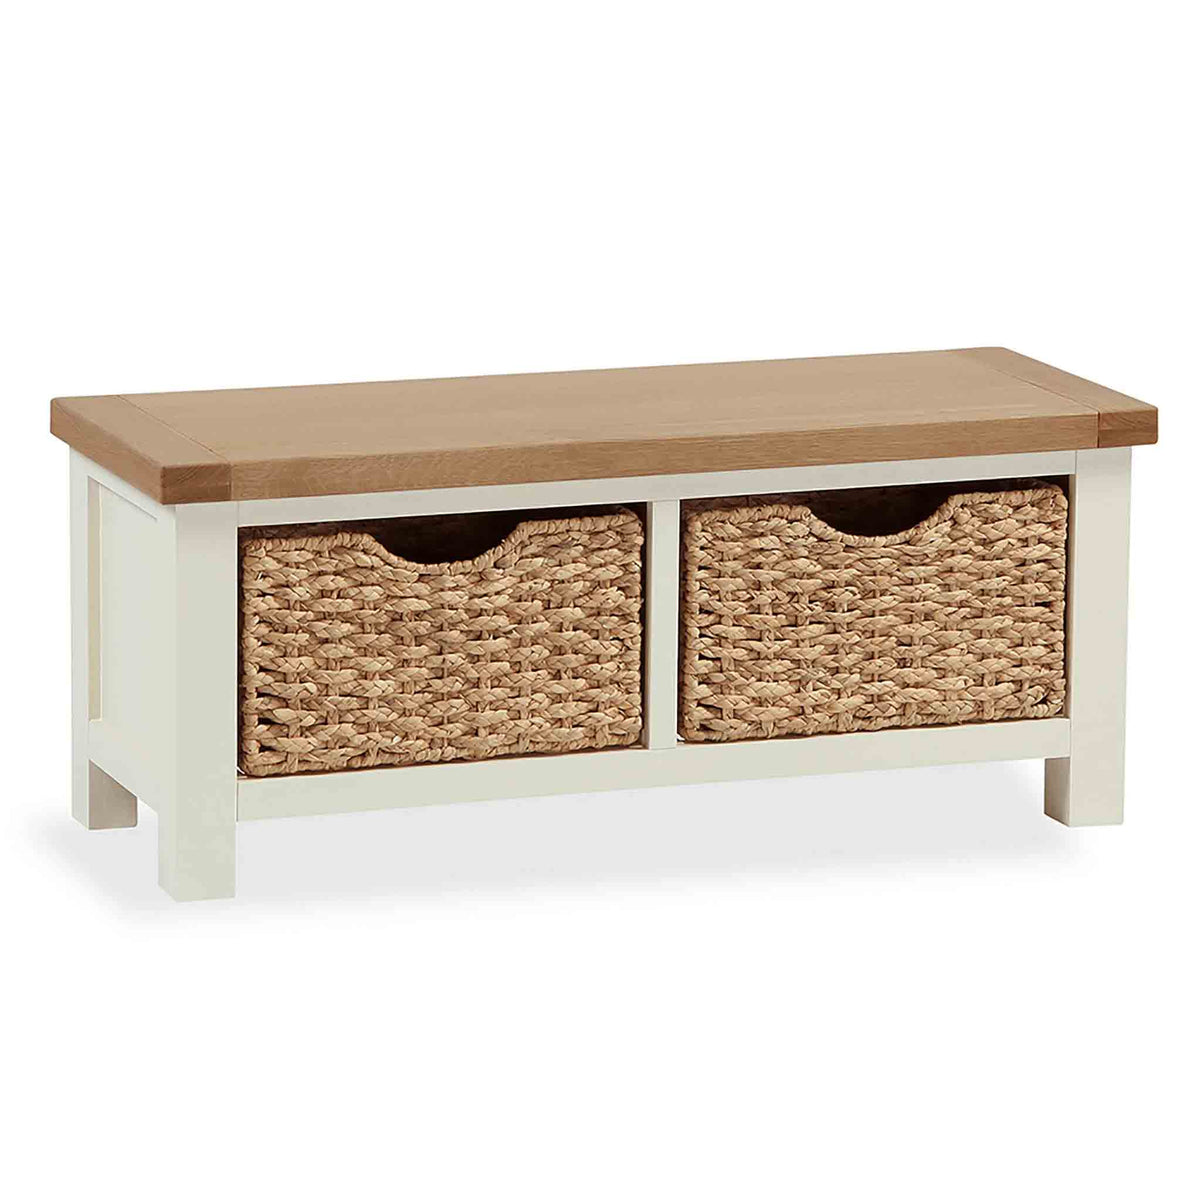 The Daymer Cream Small Oak Top Bench with Storage Baskets from Roseland Furniture